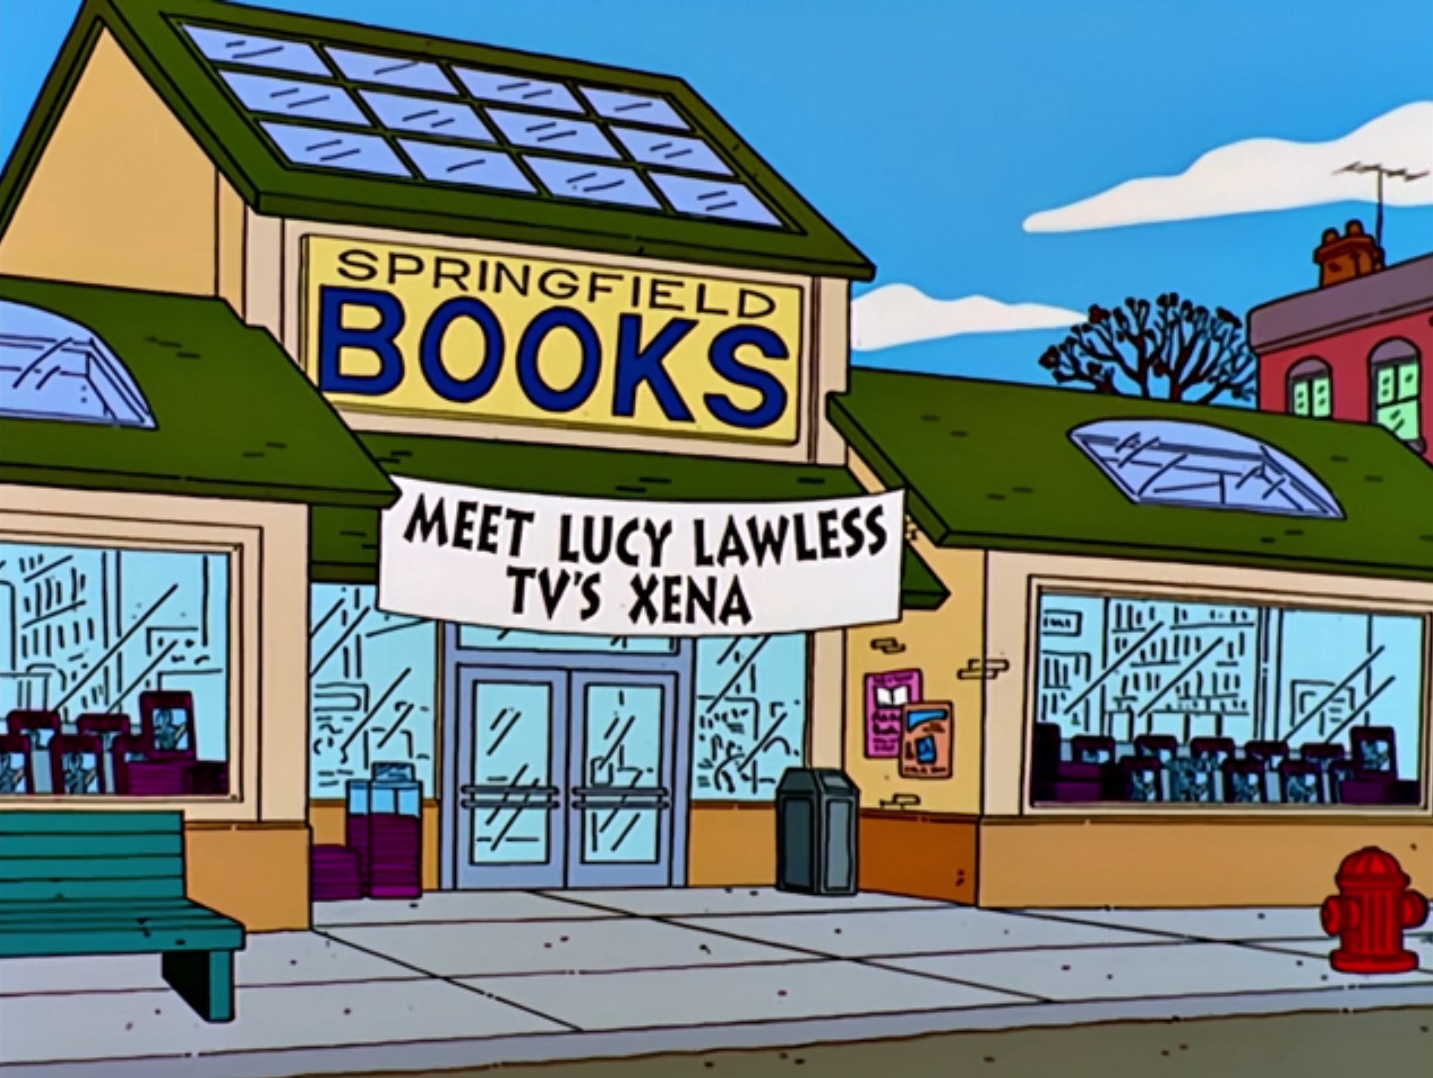 Springfield Books.png